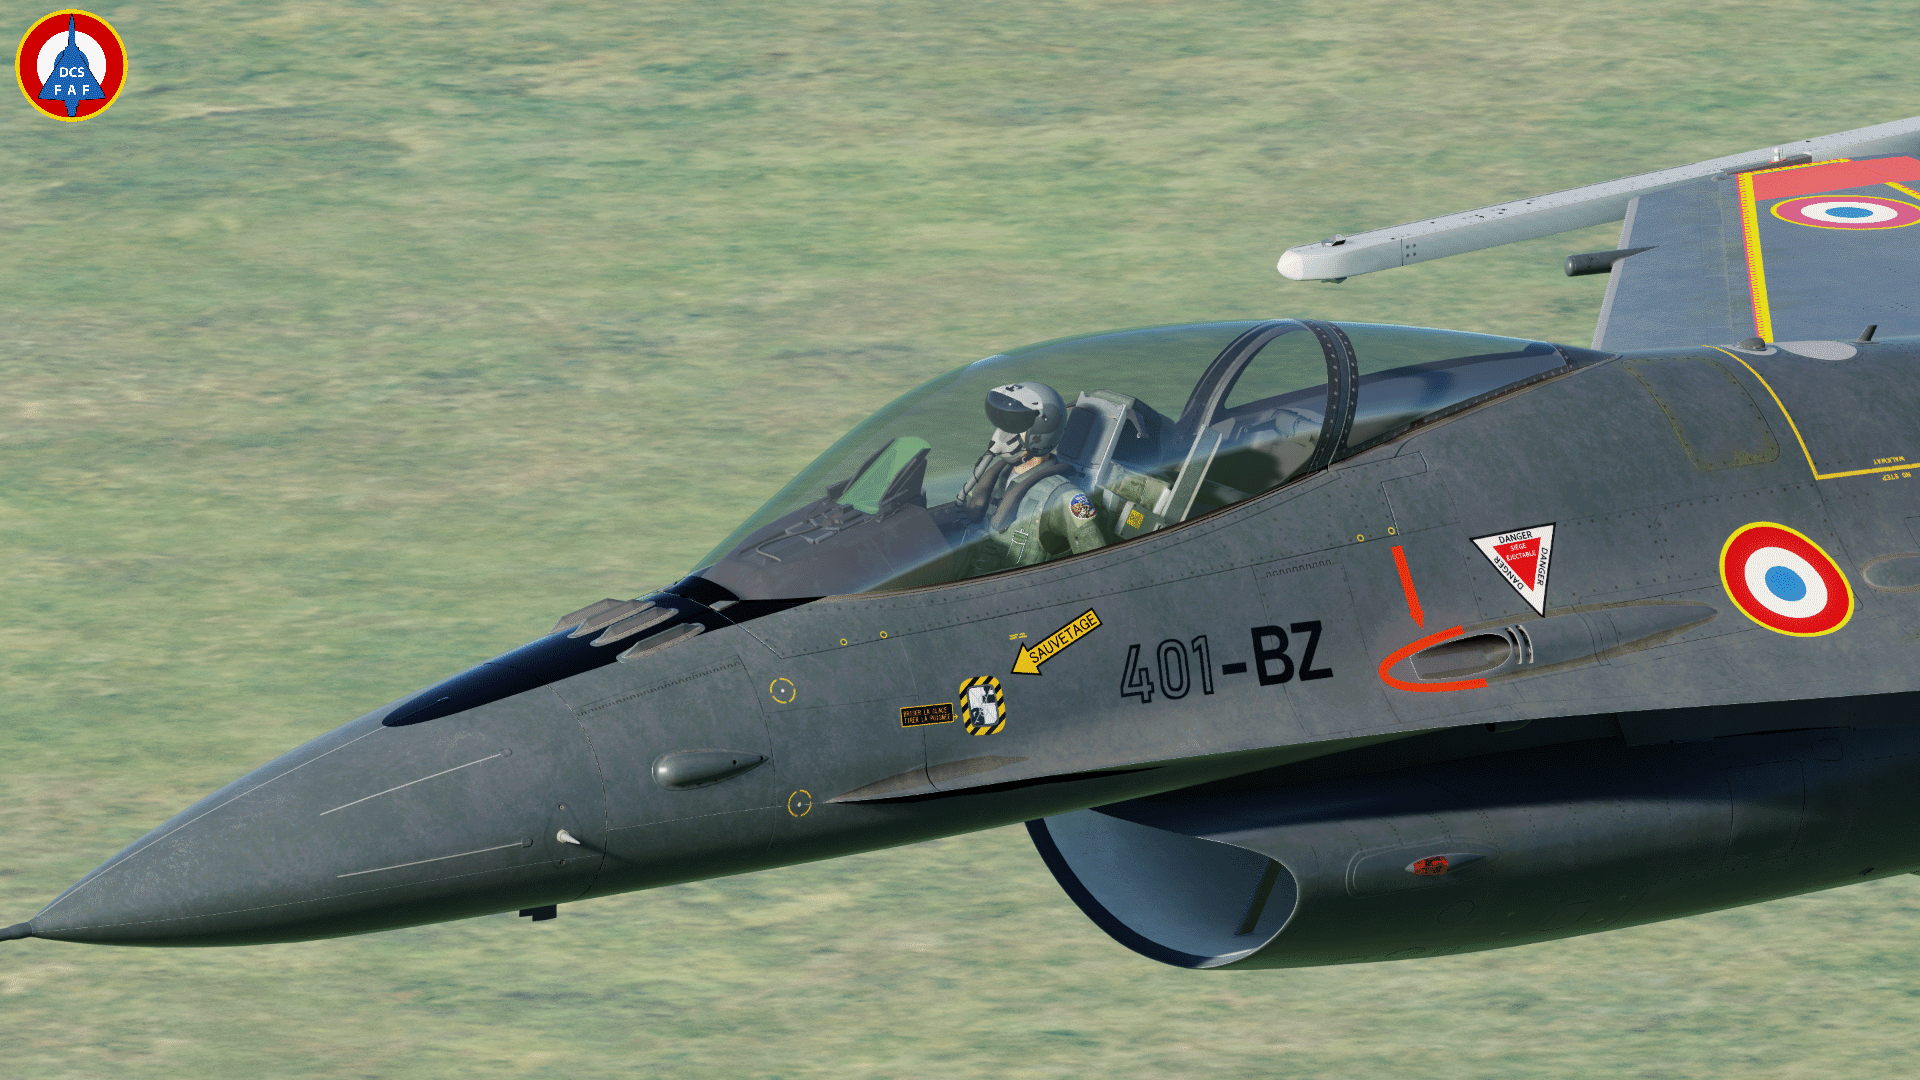 F-16C - French Alphajet tribute livery